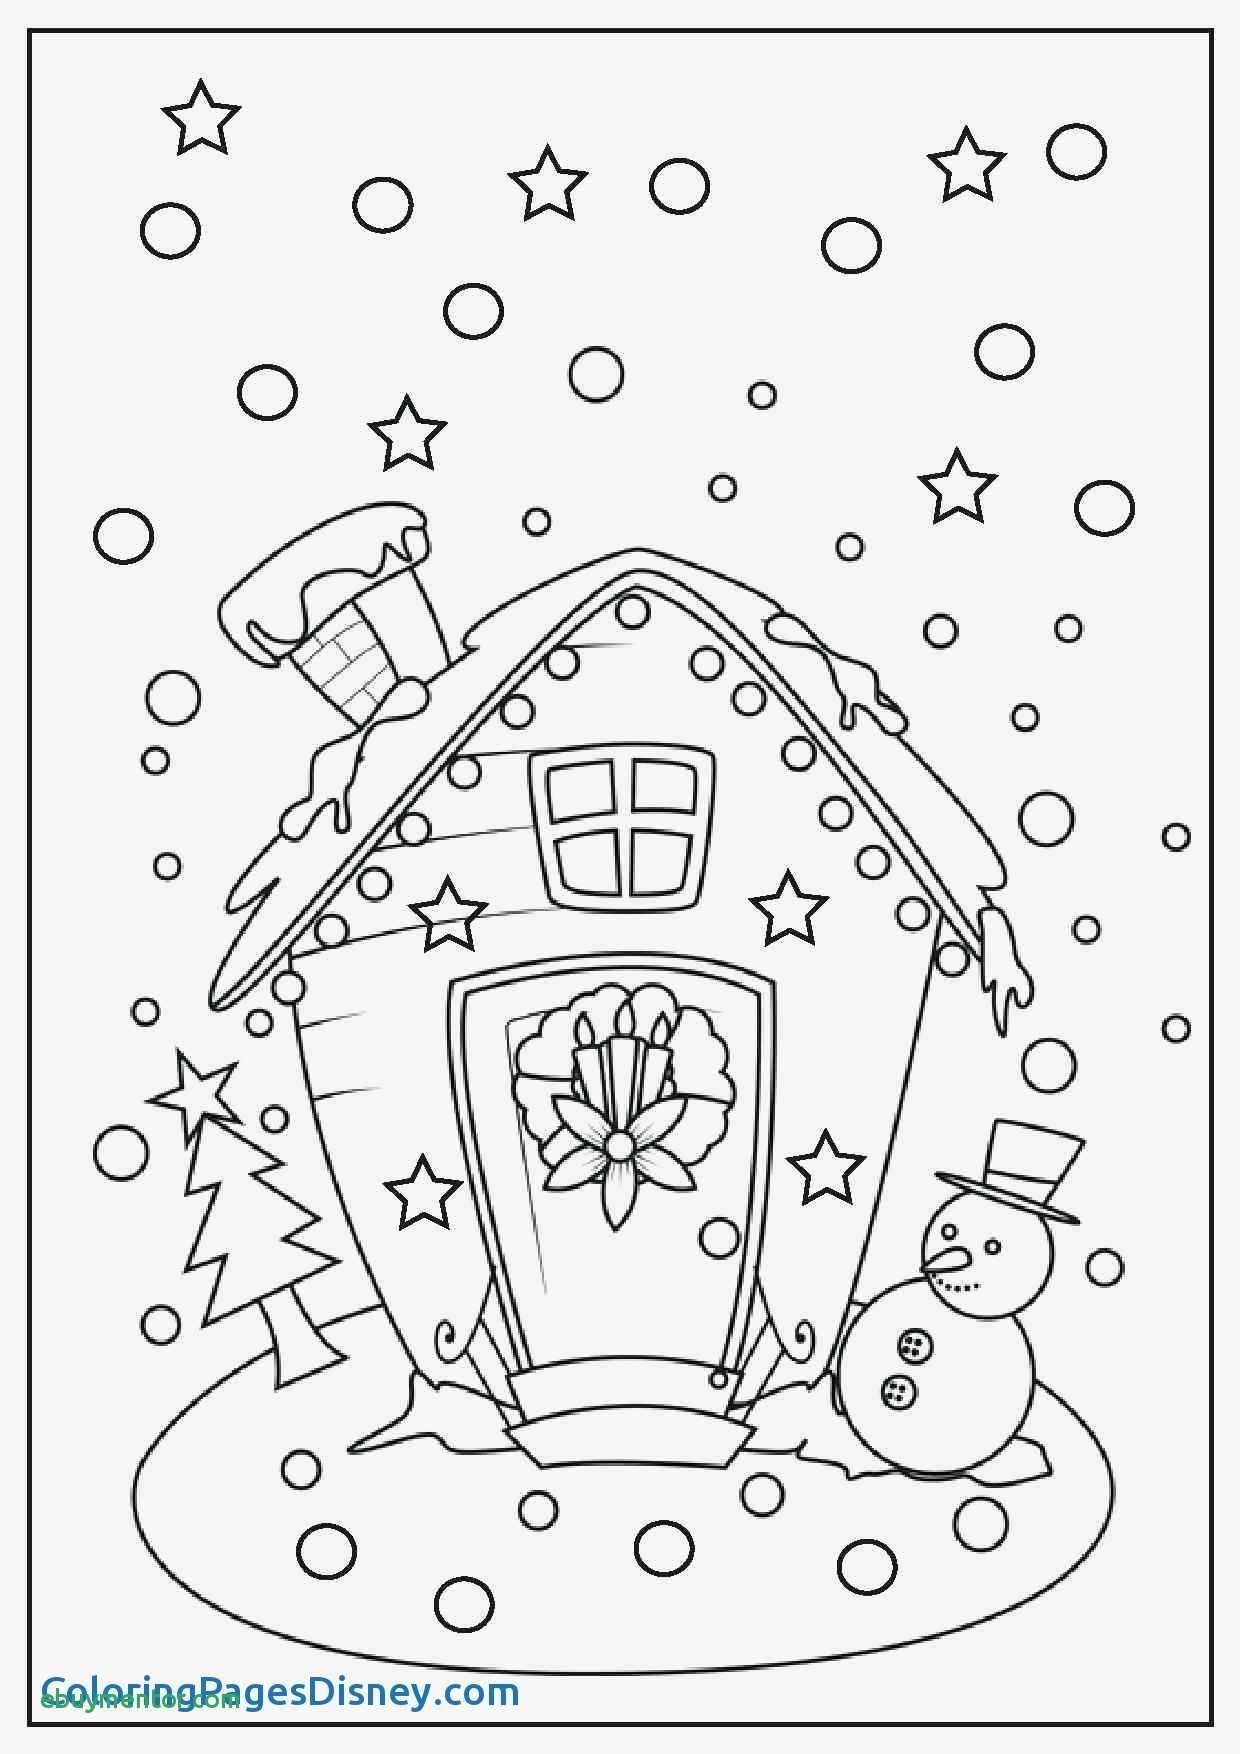 Christmas Quotes Coloring Pages With Images To Color Best 2018 Greetings